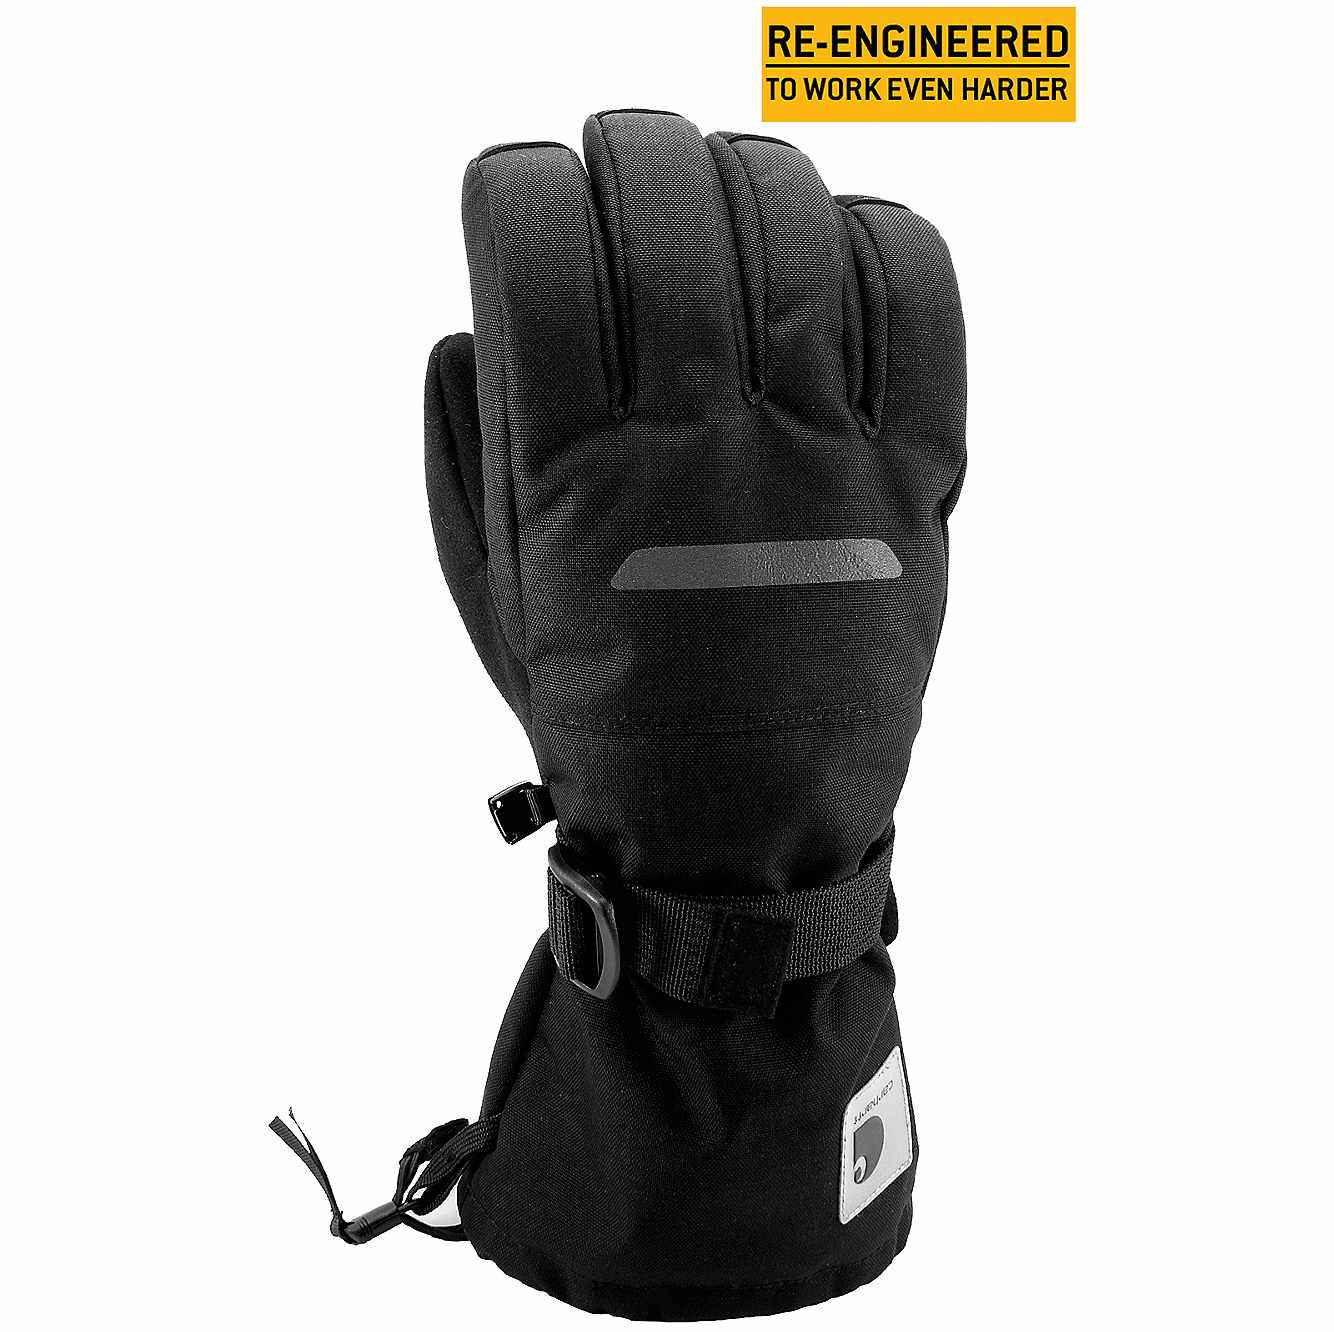 Picture of YUKON EXTREMES® STORM DEFENDER INSULATED GLOVE in Black